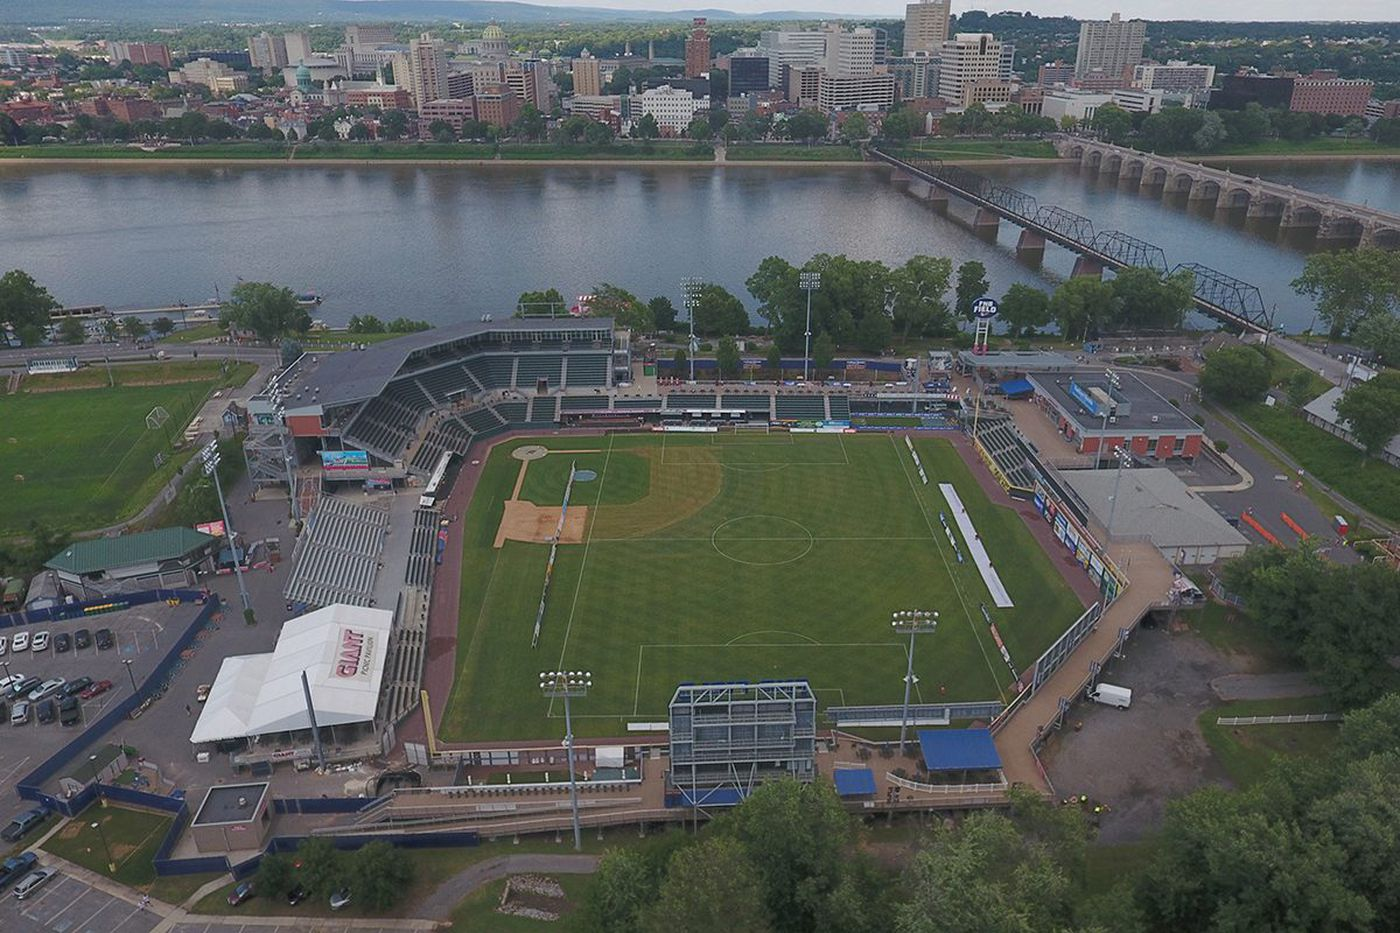 Harrisburg becomes an American soccer science lab with USL team overhaul